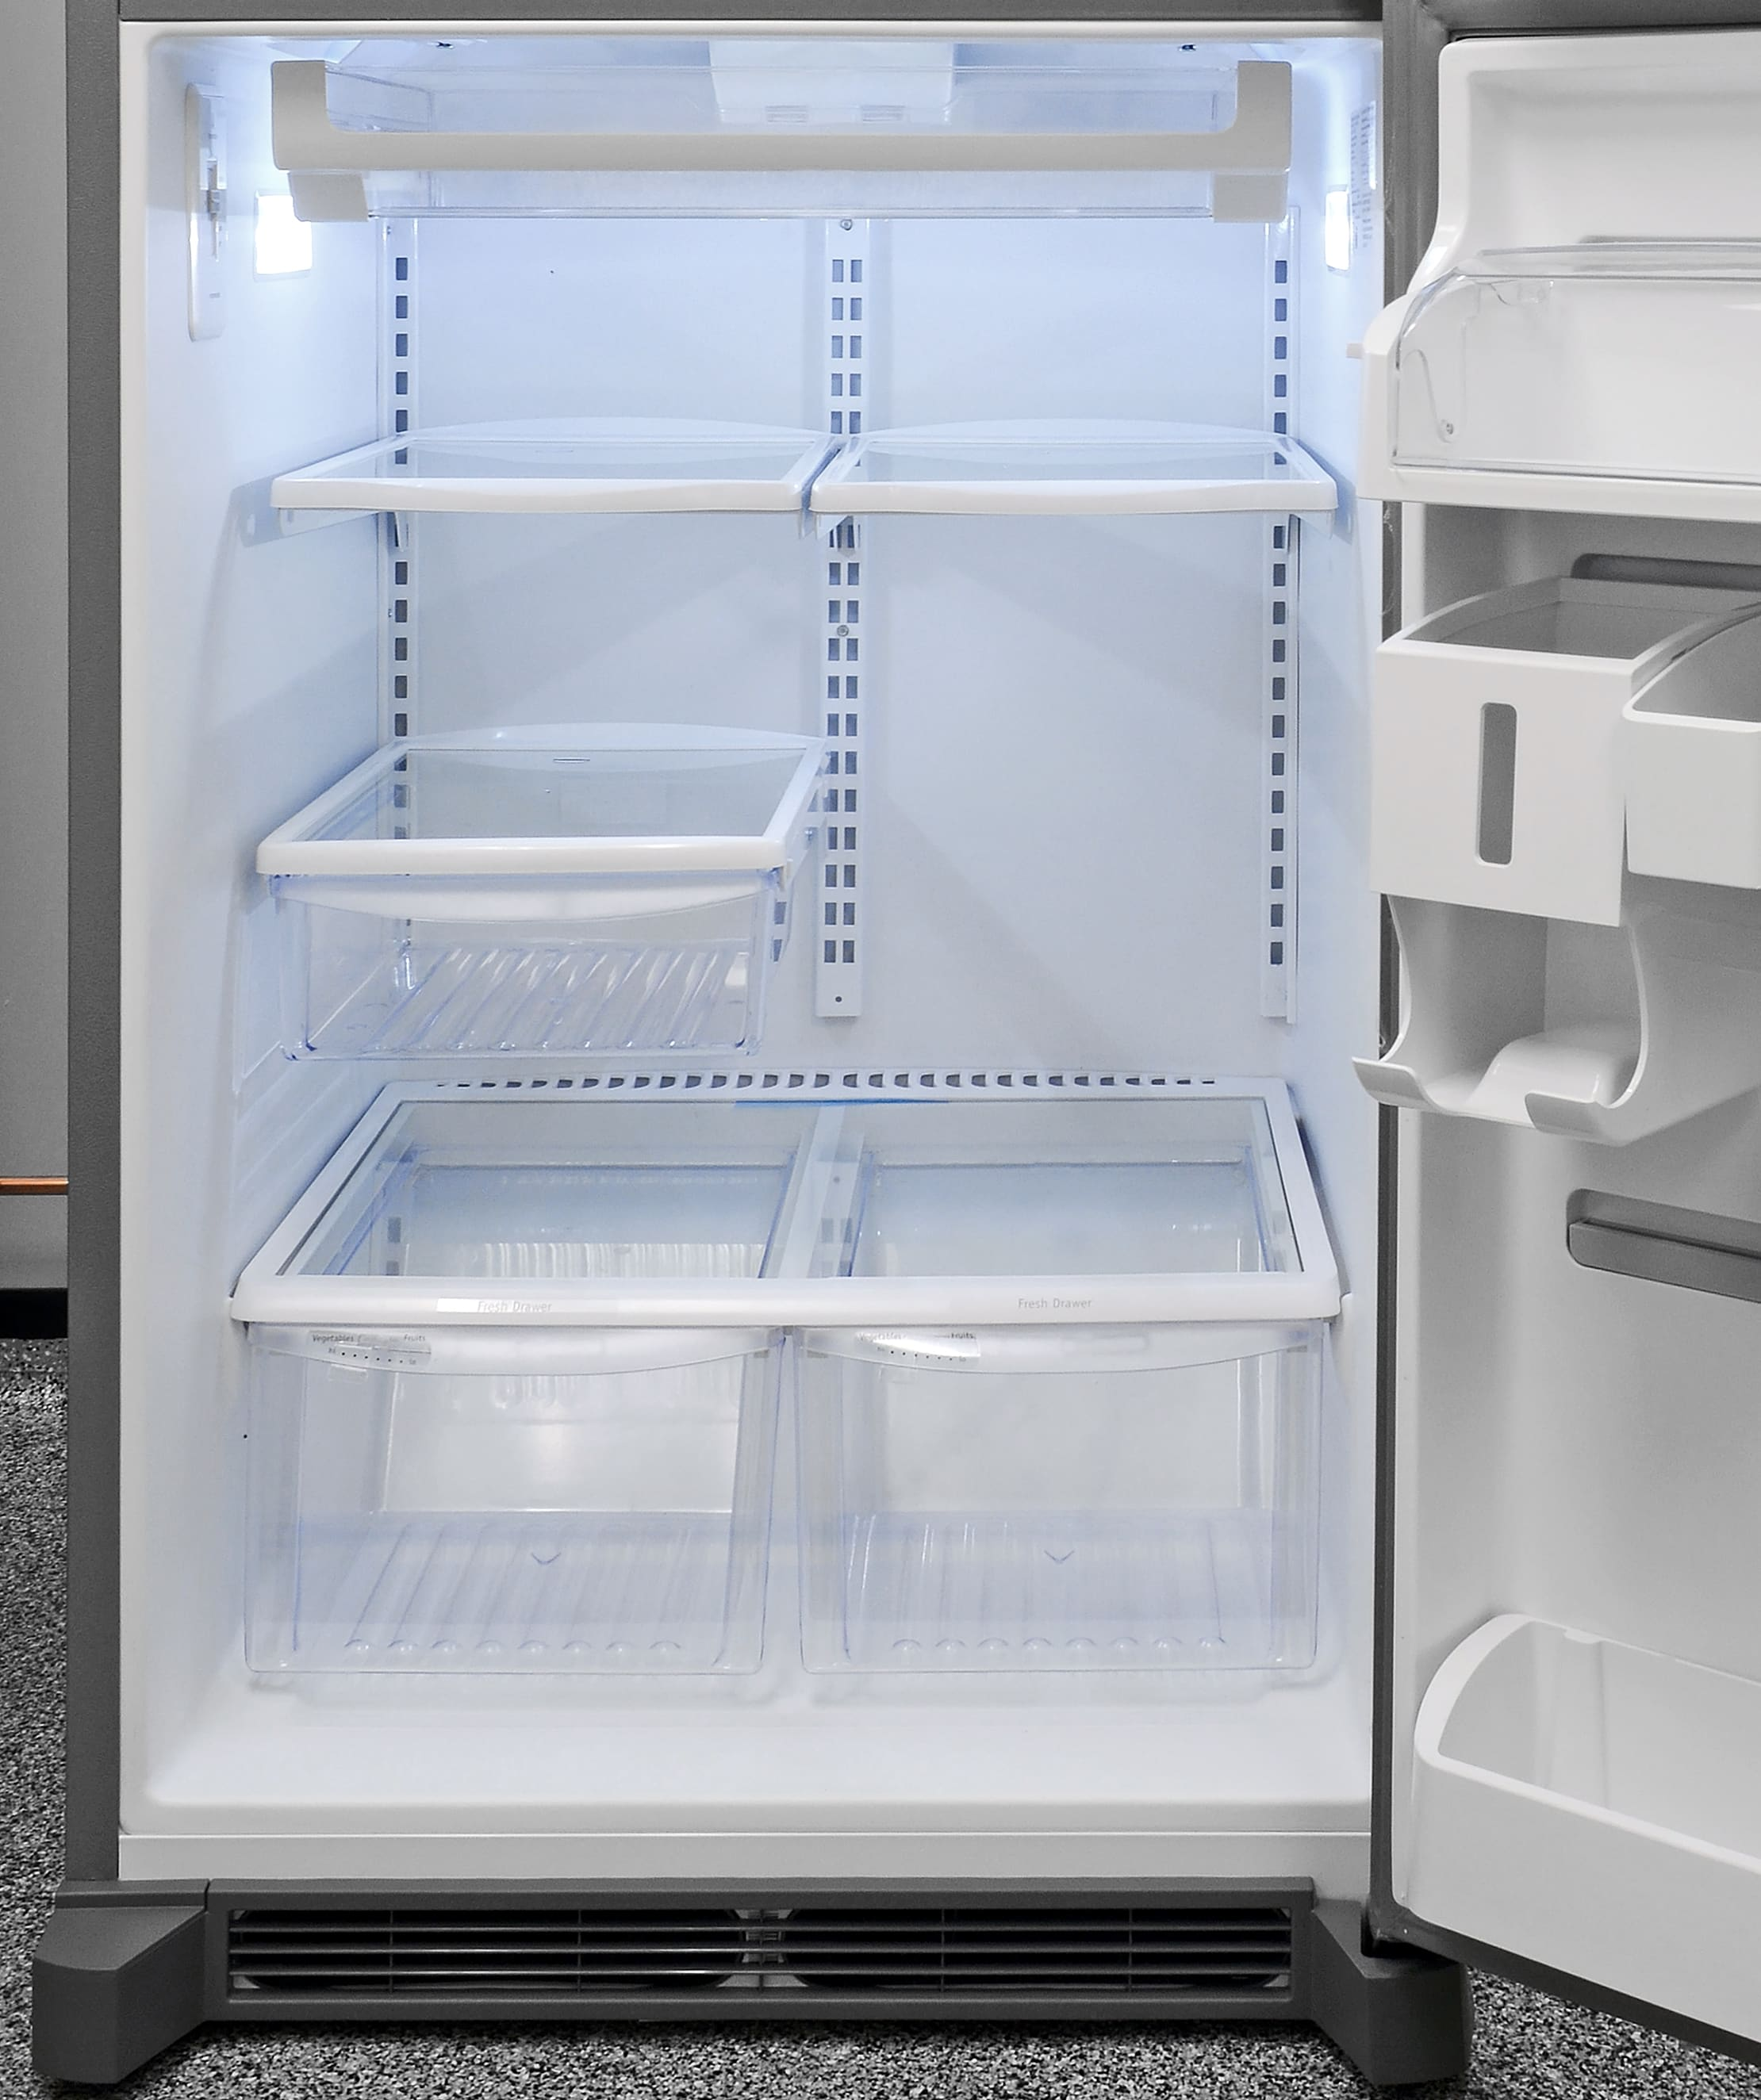 The Frigidaire Gallery FGHI2164QF's half-width shelves are easy to adjust and offer plenty of customizable storage.